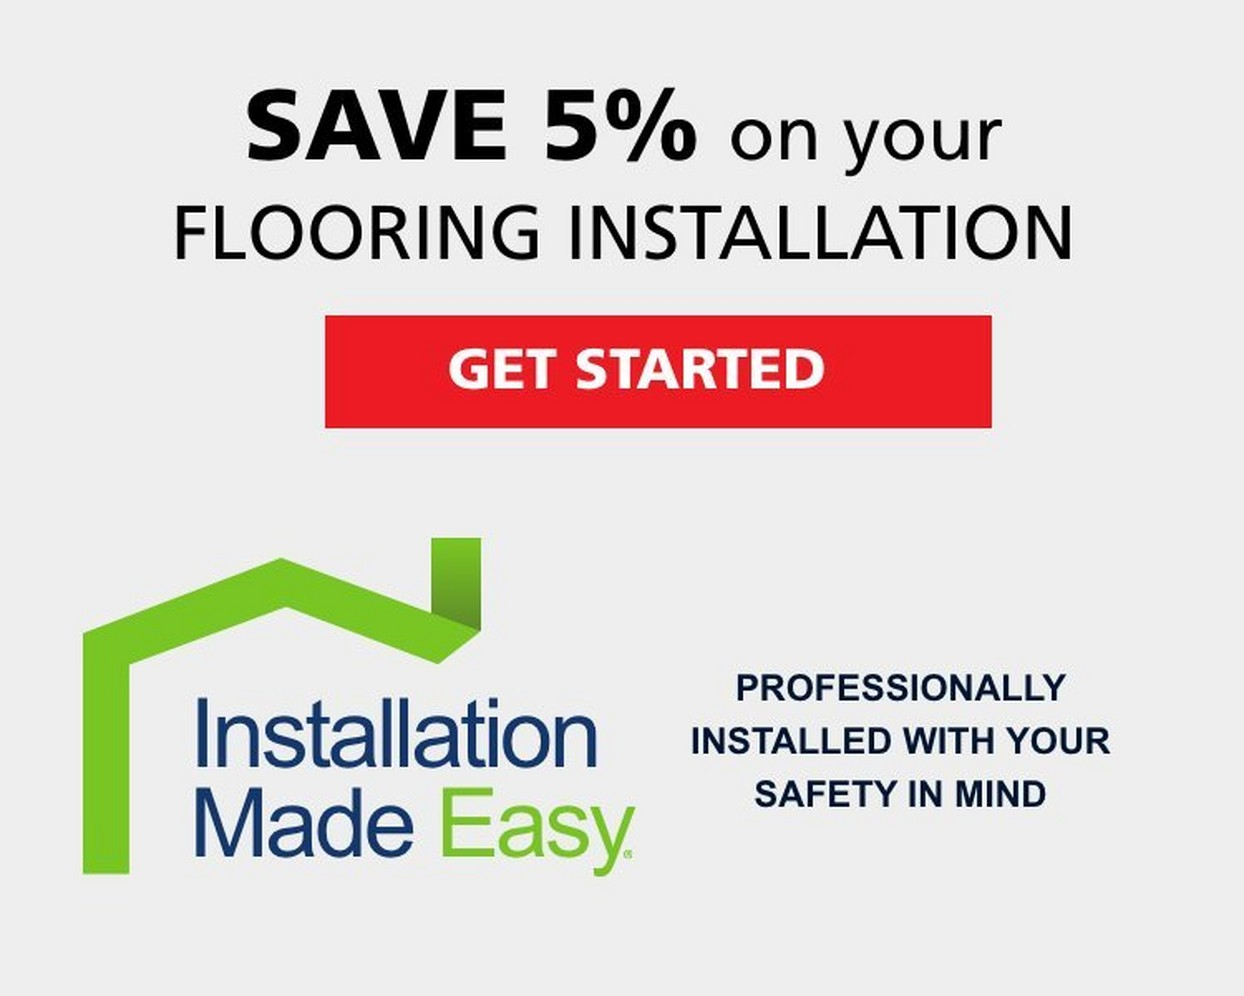 Installation Made Easy